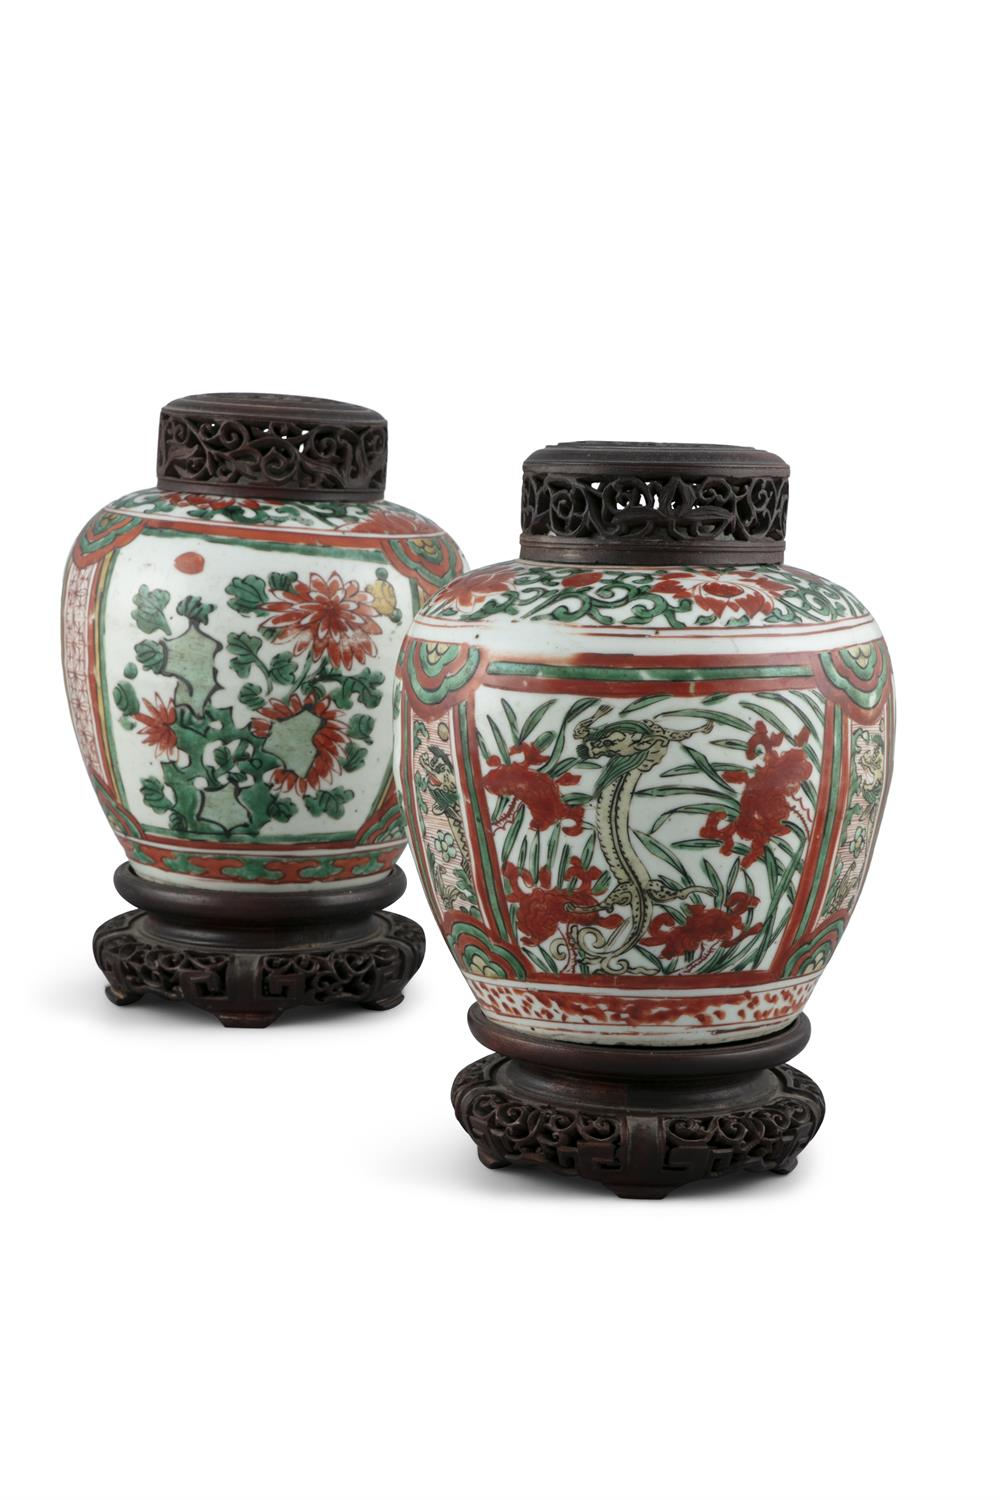 A NEAR PAIR OF WUCAI 'CHI DRAGONS' PORCELAIN GINGER JARS China, Transitional period, 17th century - Image 13 of 17